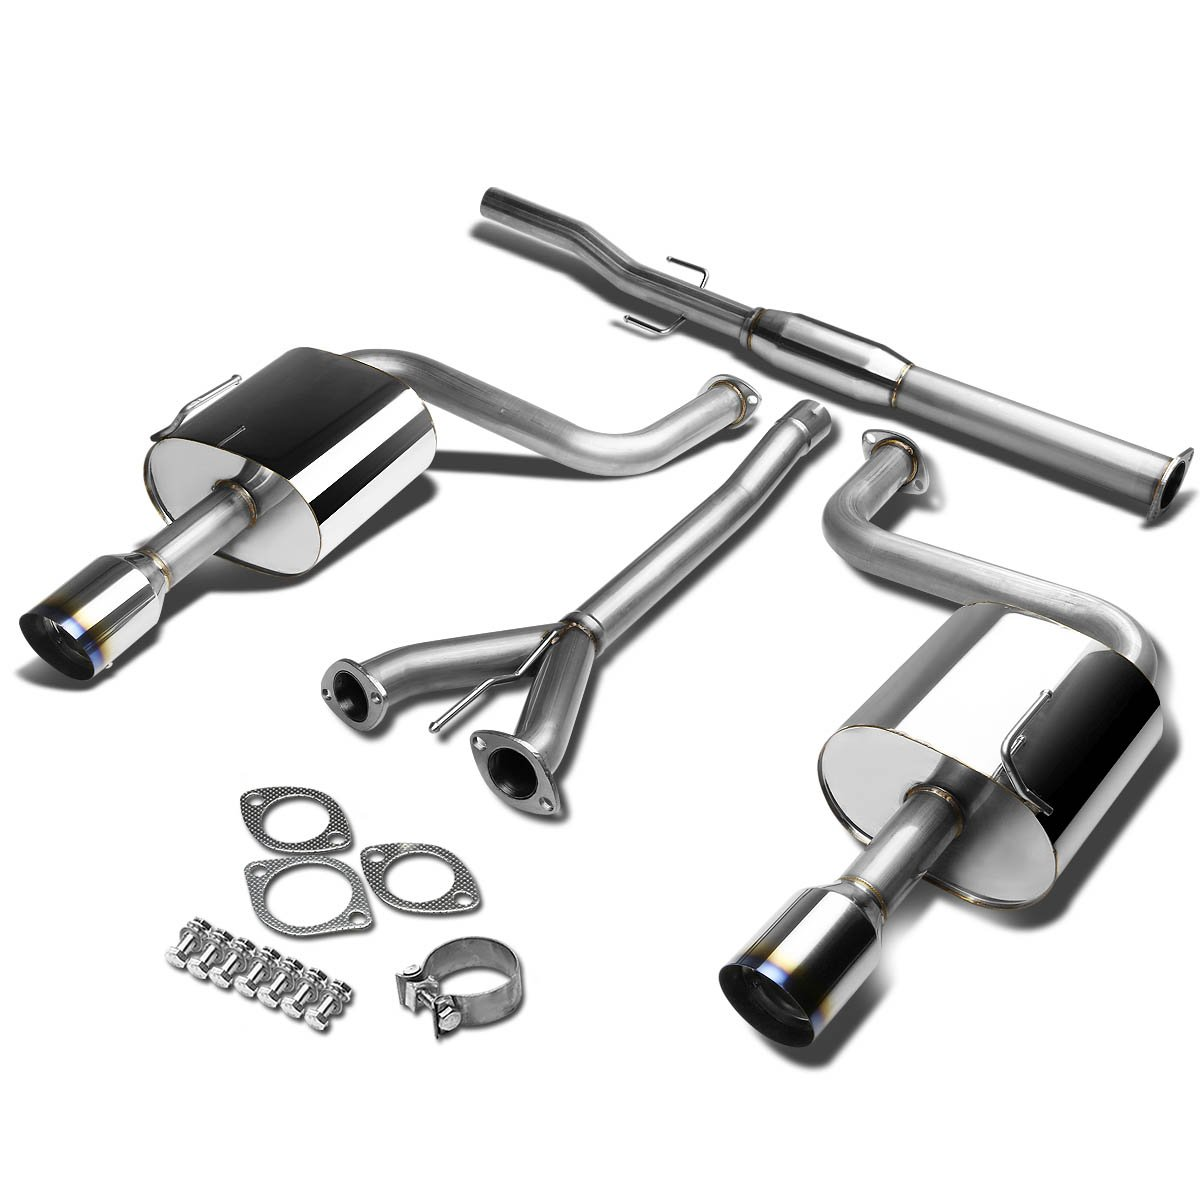 For 09-15 Nissan Maxima A35 VQ35 Stainless Steel 4 inches Burnt Muffler Tip Catback Exhaust System